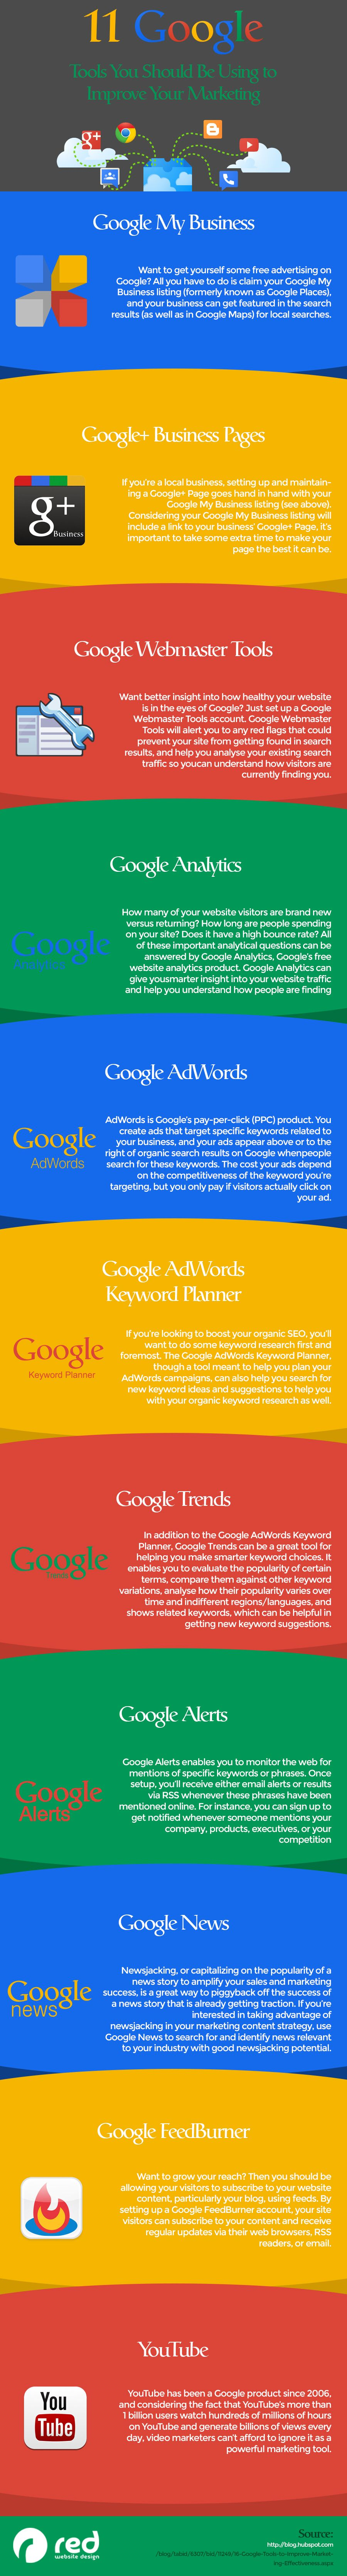 11 Google Tools You Should Be Using To Improve Your Marketing #infographic #Google #Marketing #Tools